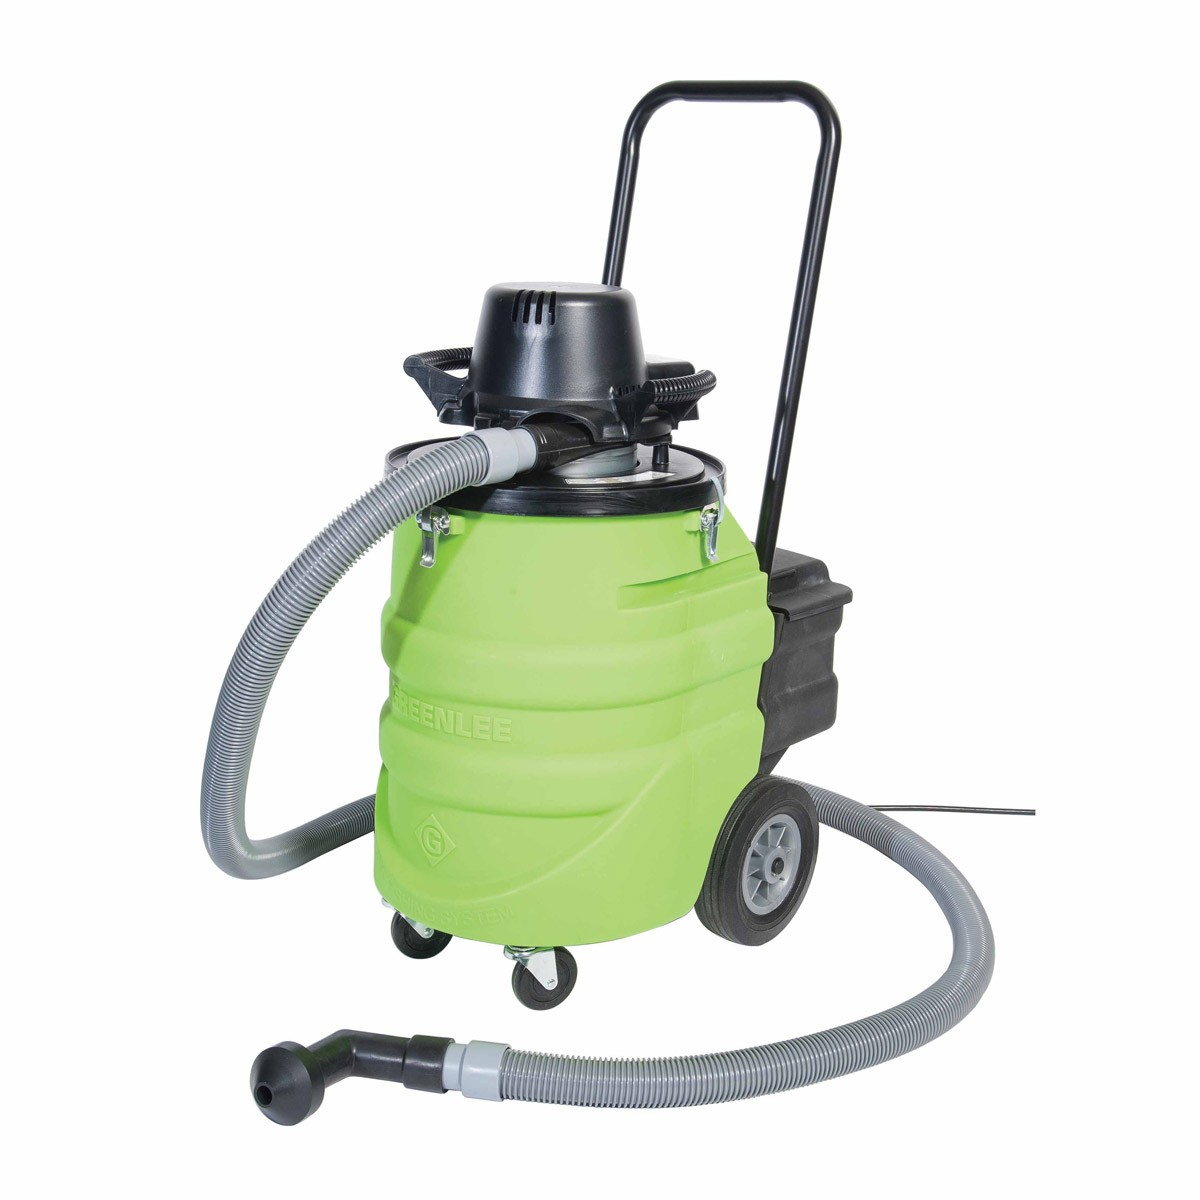 Vacuum And Blower Systems : Greenlee power fishing system vacuum blower kit